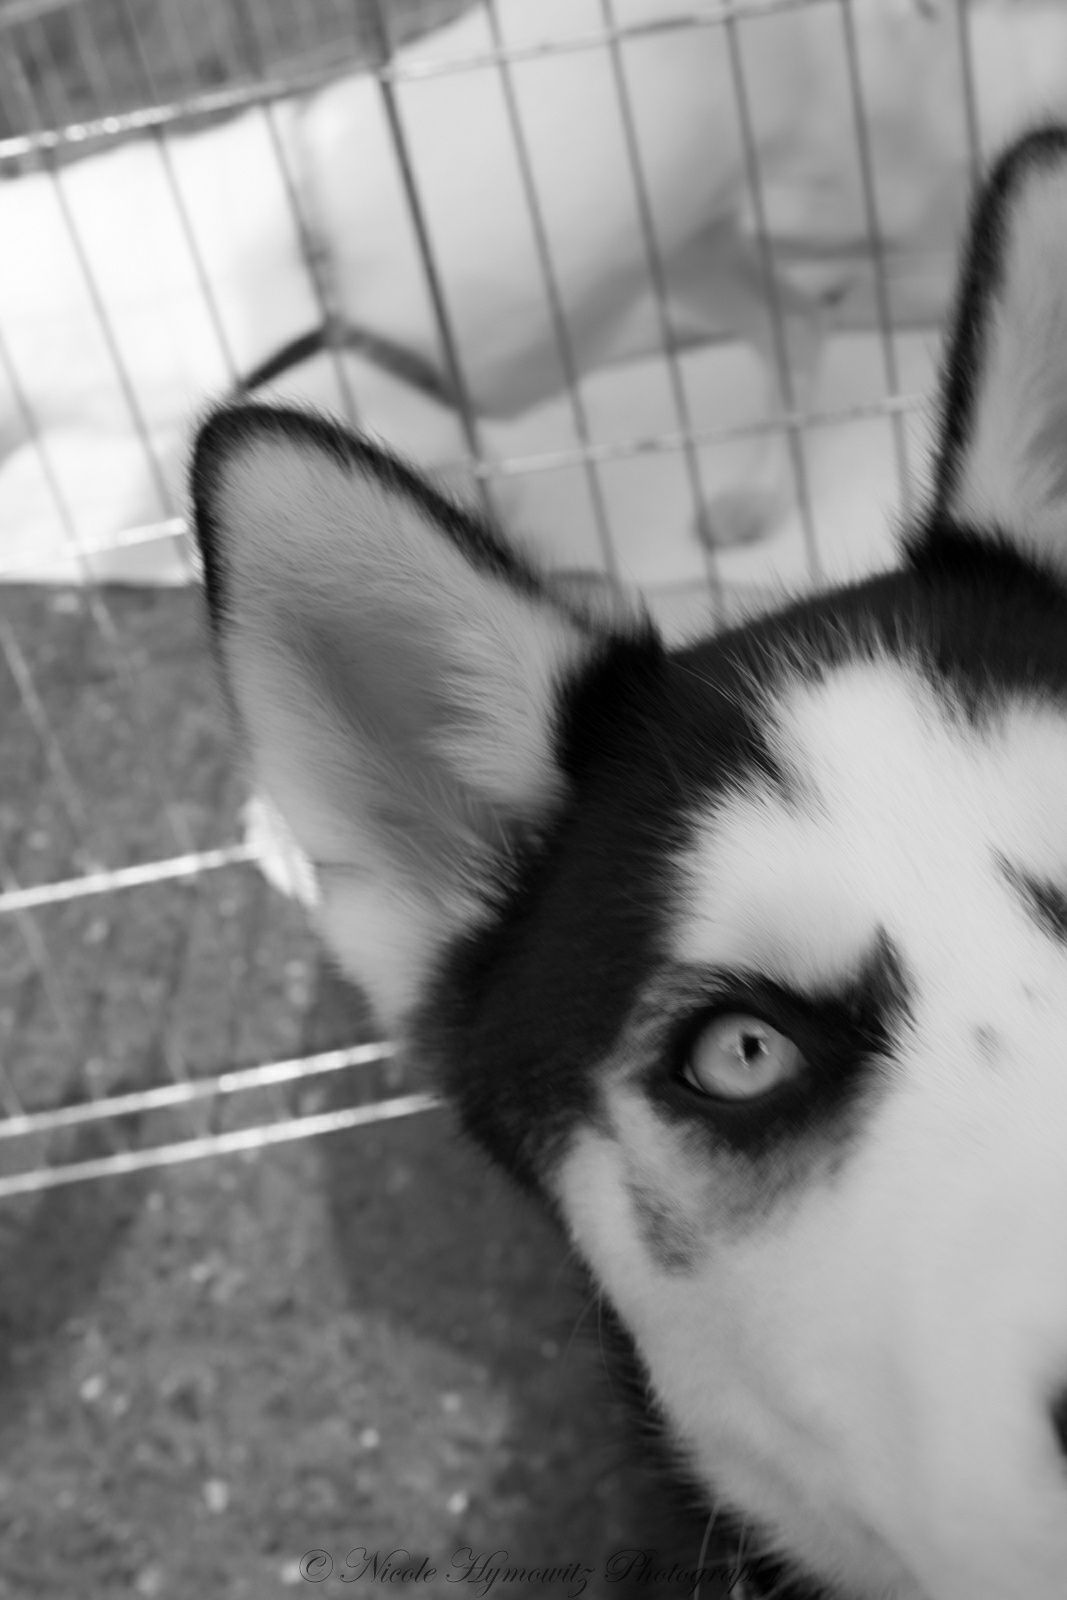 One Photo A Day Husky Adopt One At Your Local Shelter Like Husky House Http Www Huskyhouse Org M Photo A Day Event Photography First Photo